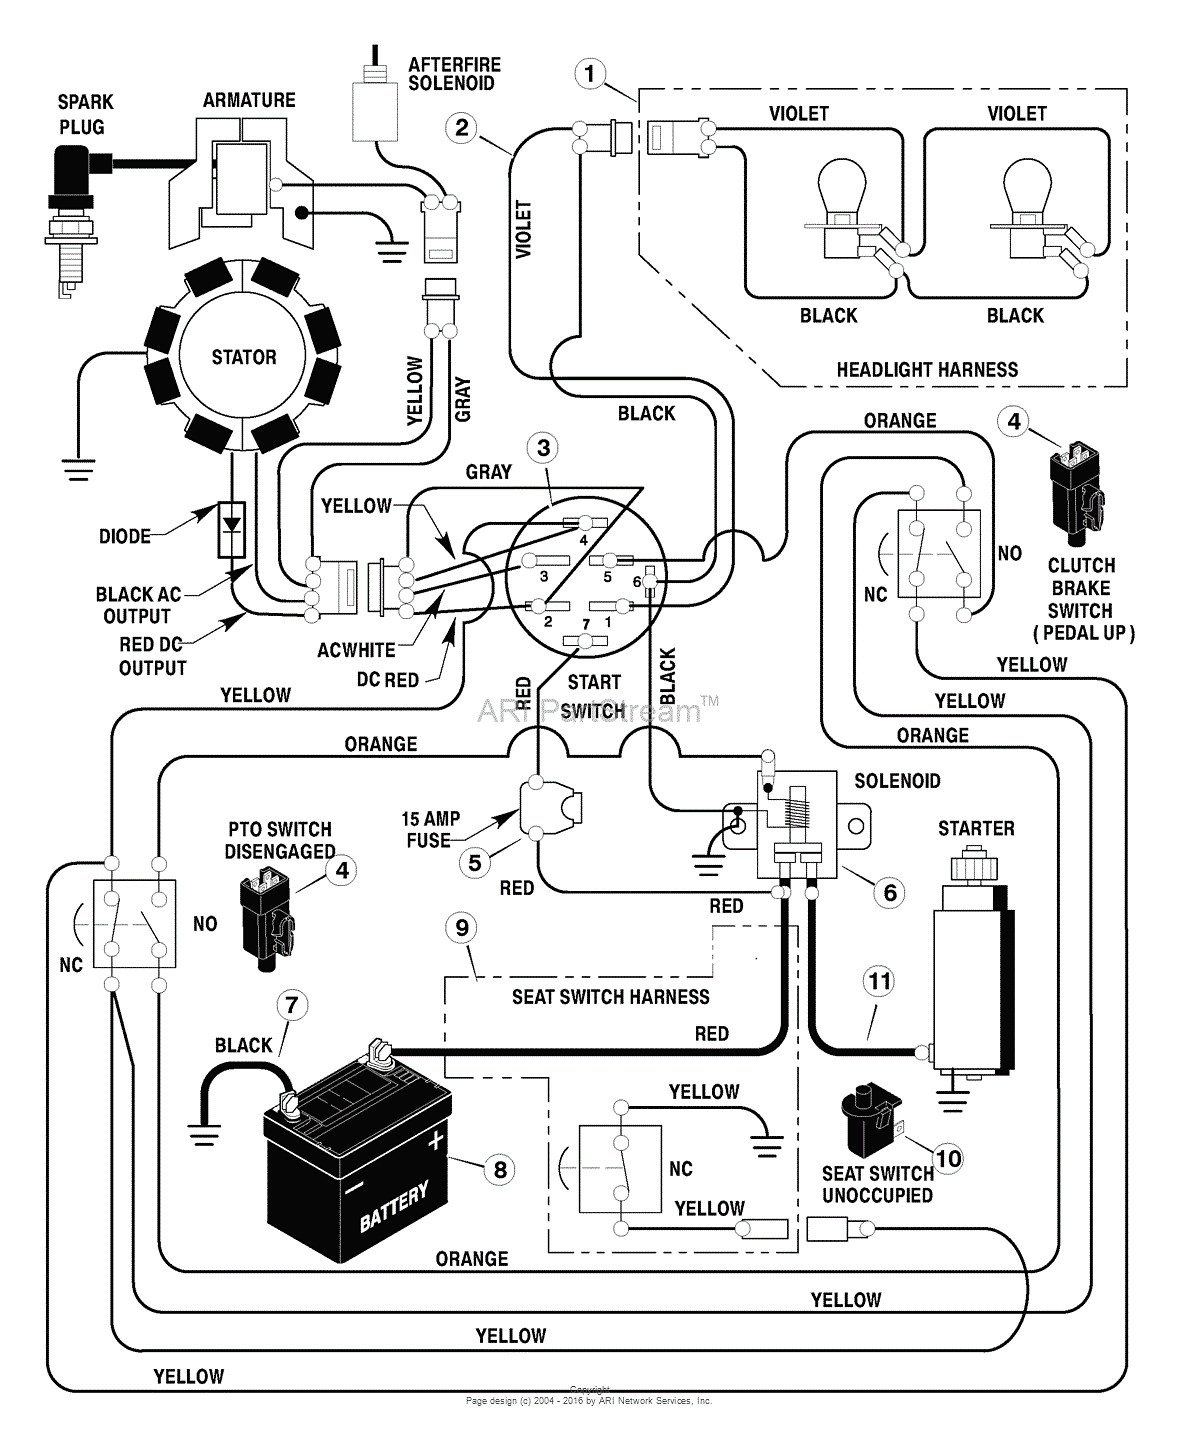 wiring diagram view diagram wiring diagrams briggs wiring diagram